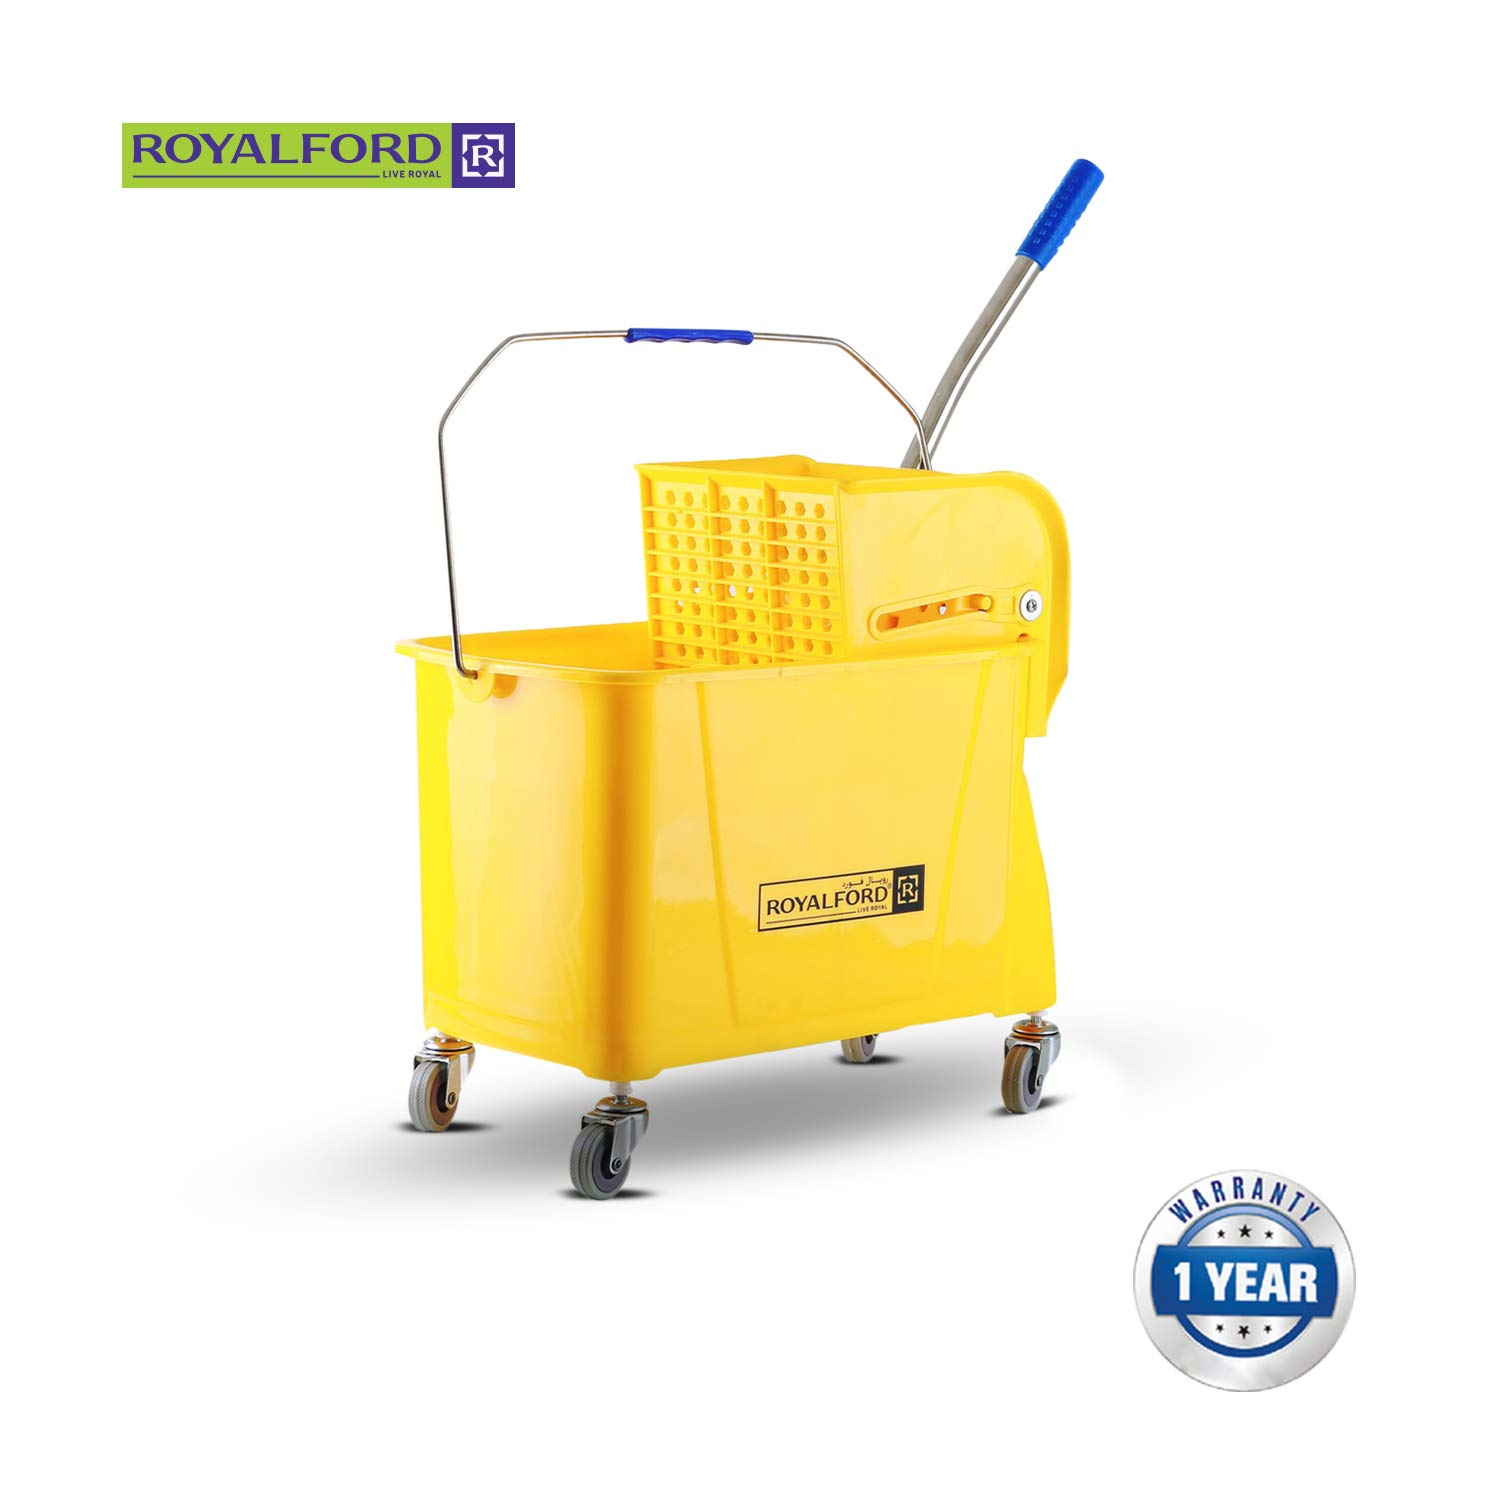 Royalford Yellow 24L Cleaning Mop Bucket with Wringer and Heavy Duty Wheels, Durable Broom and Dustpan Set, Essential Cleaning Products